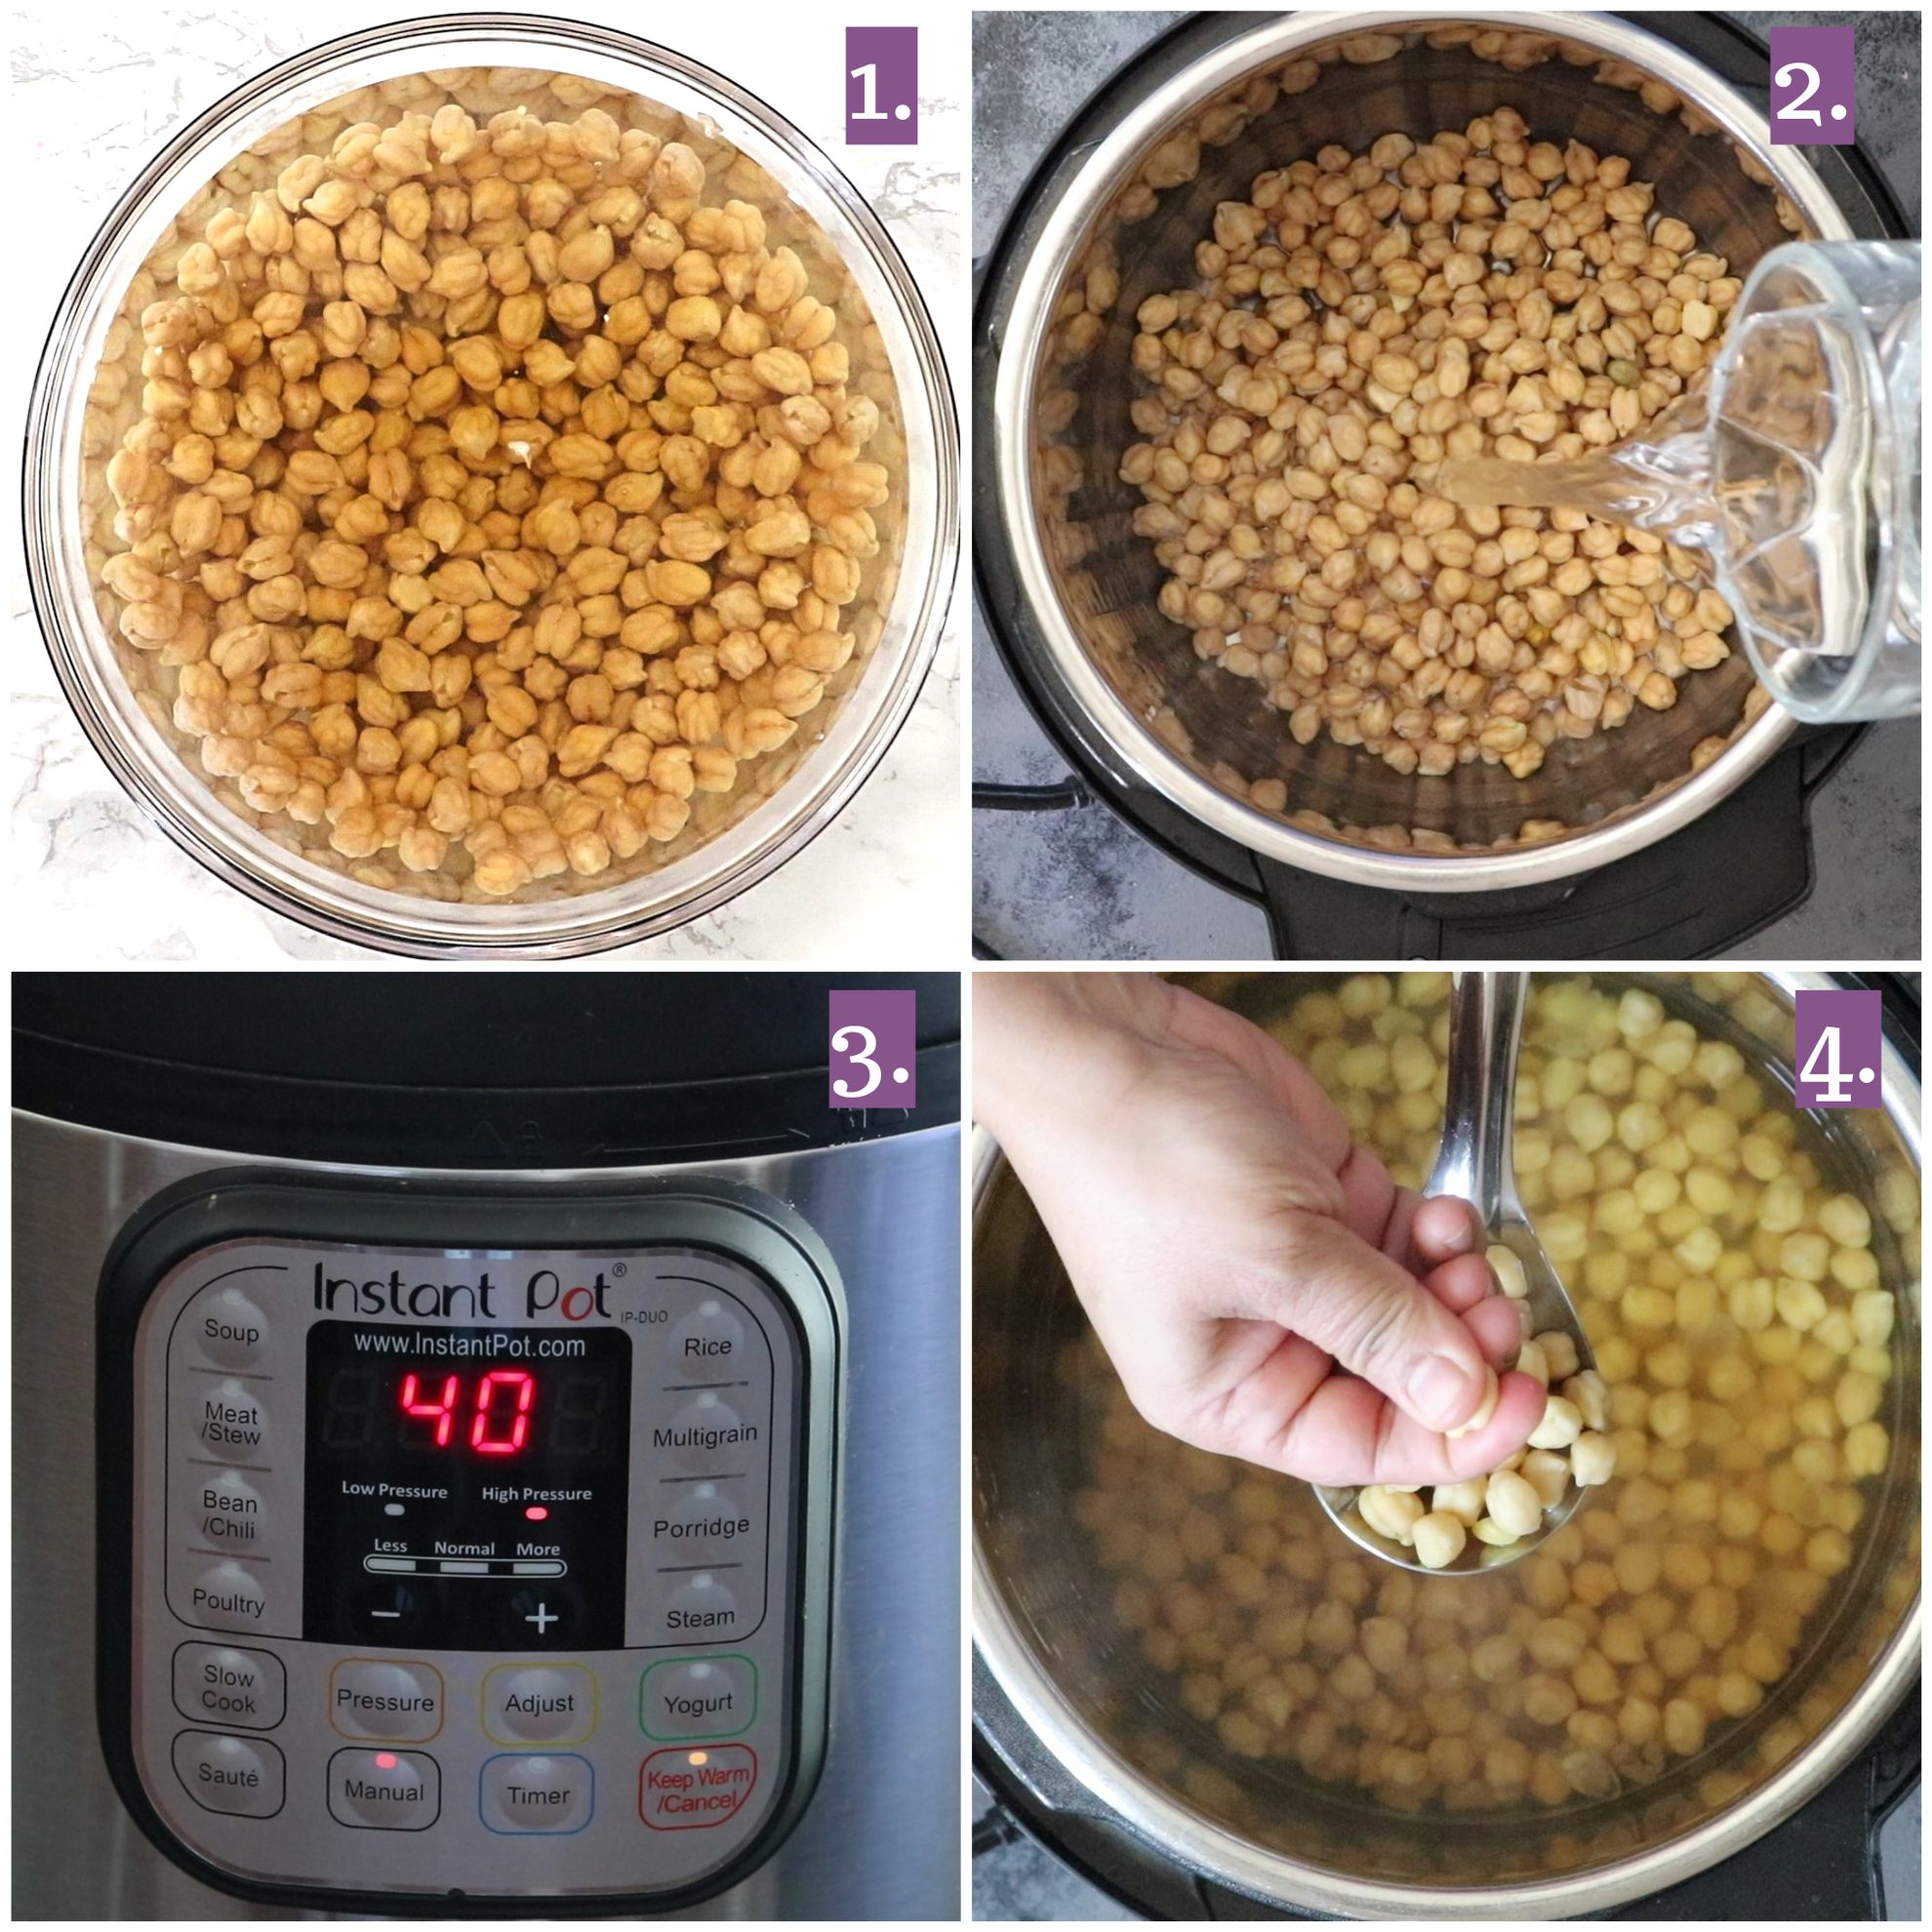 How to boil chickpeas in an Instant Pot